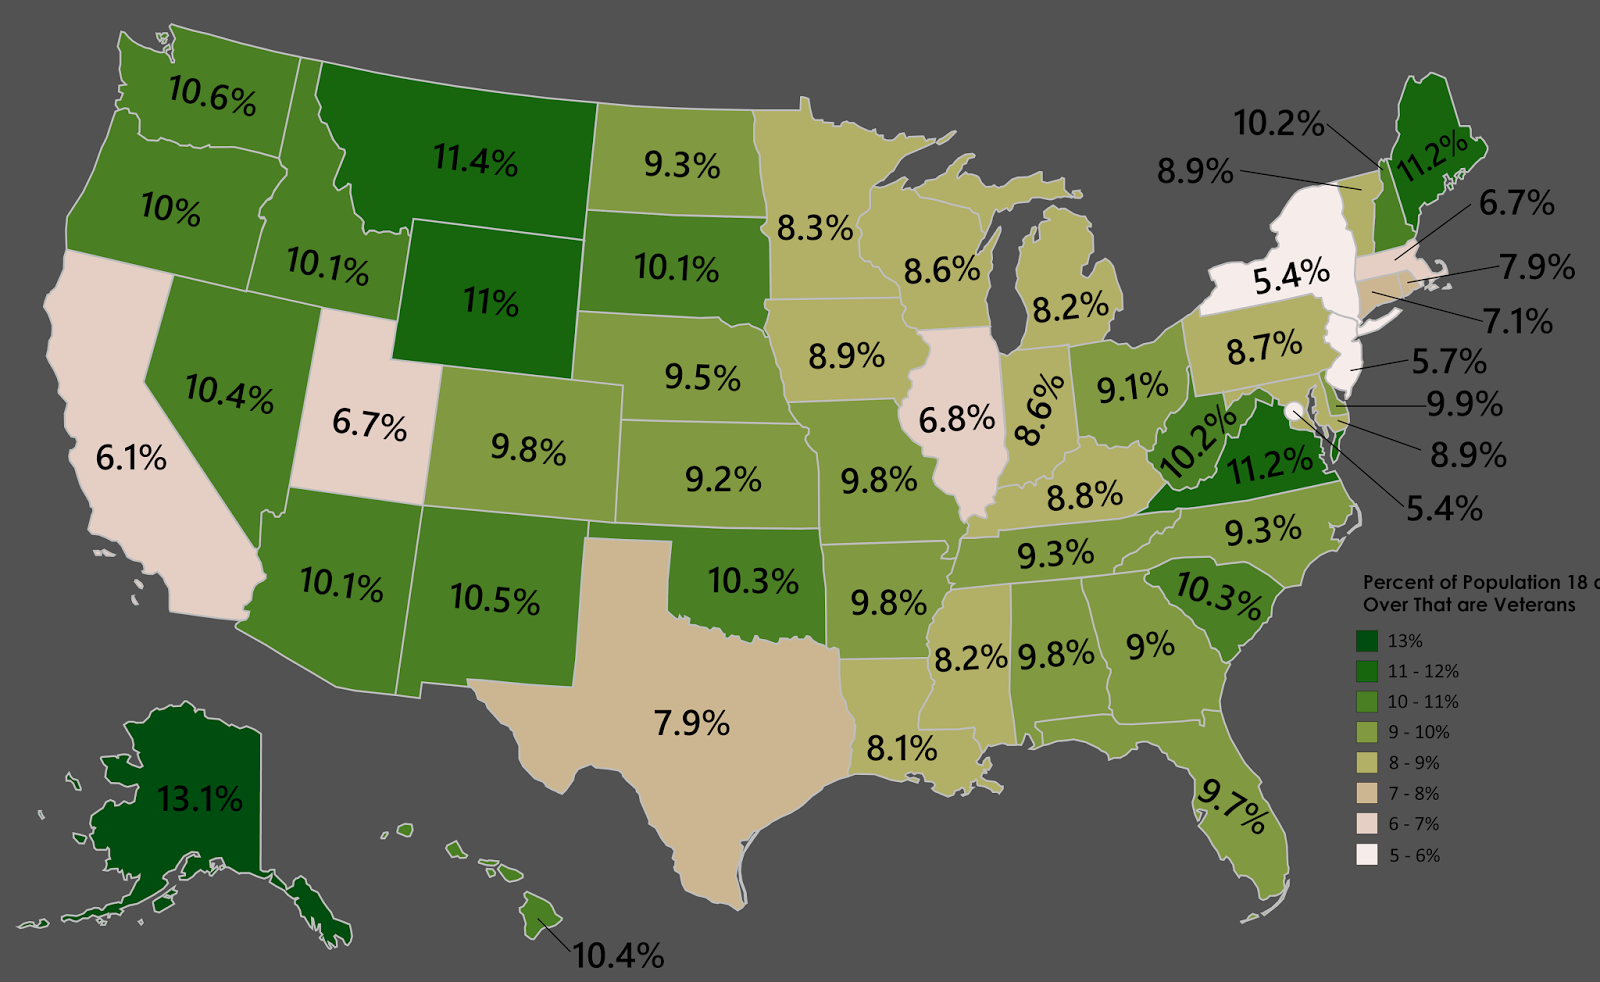 Percent of Population 18 and Over That are Veterans